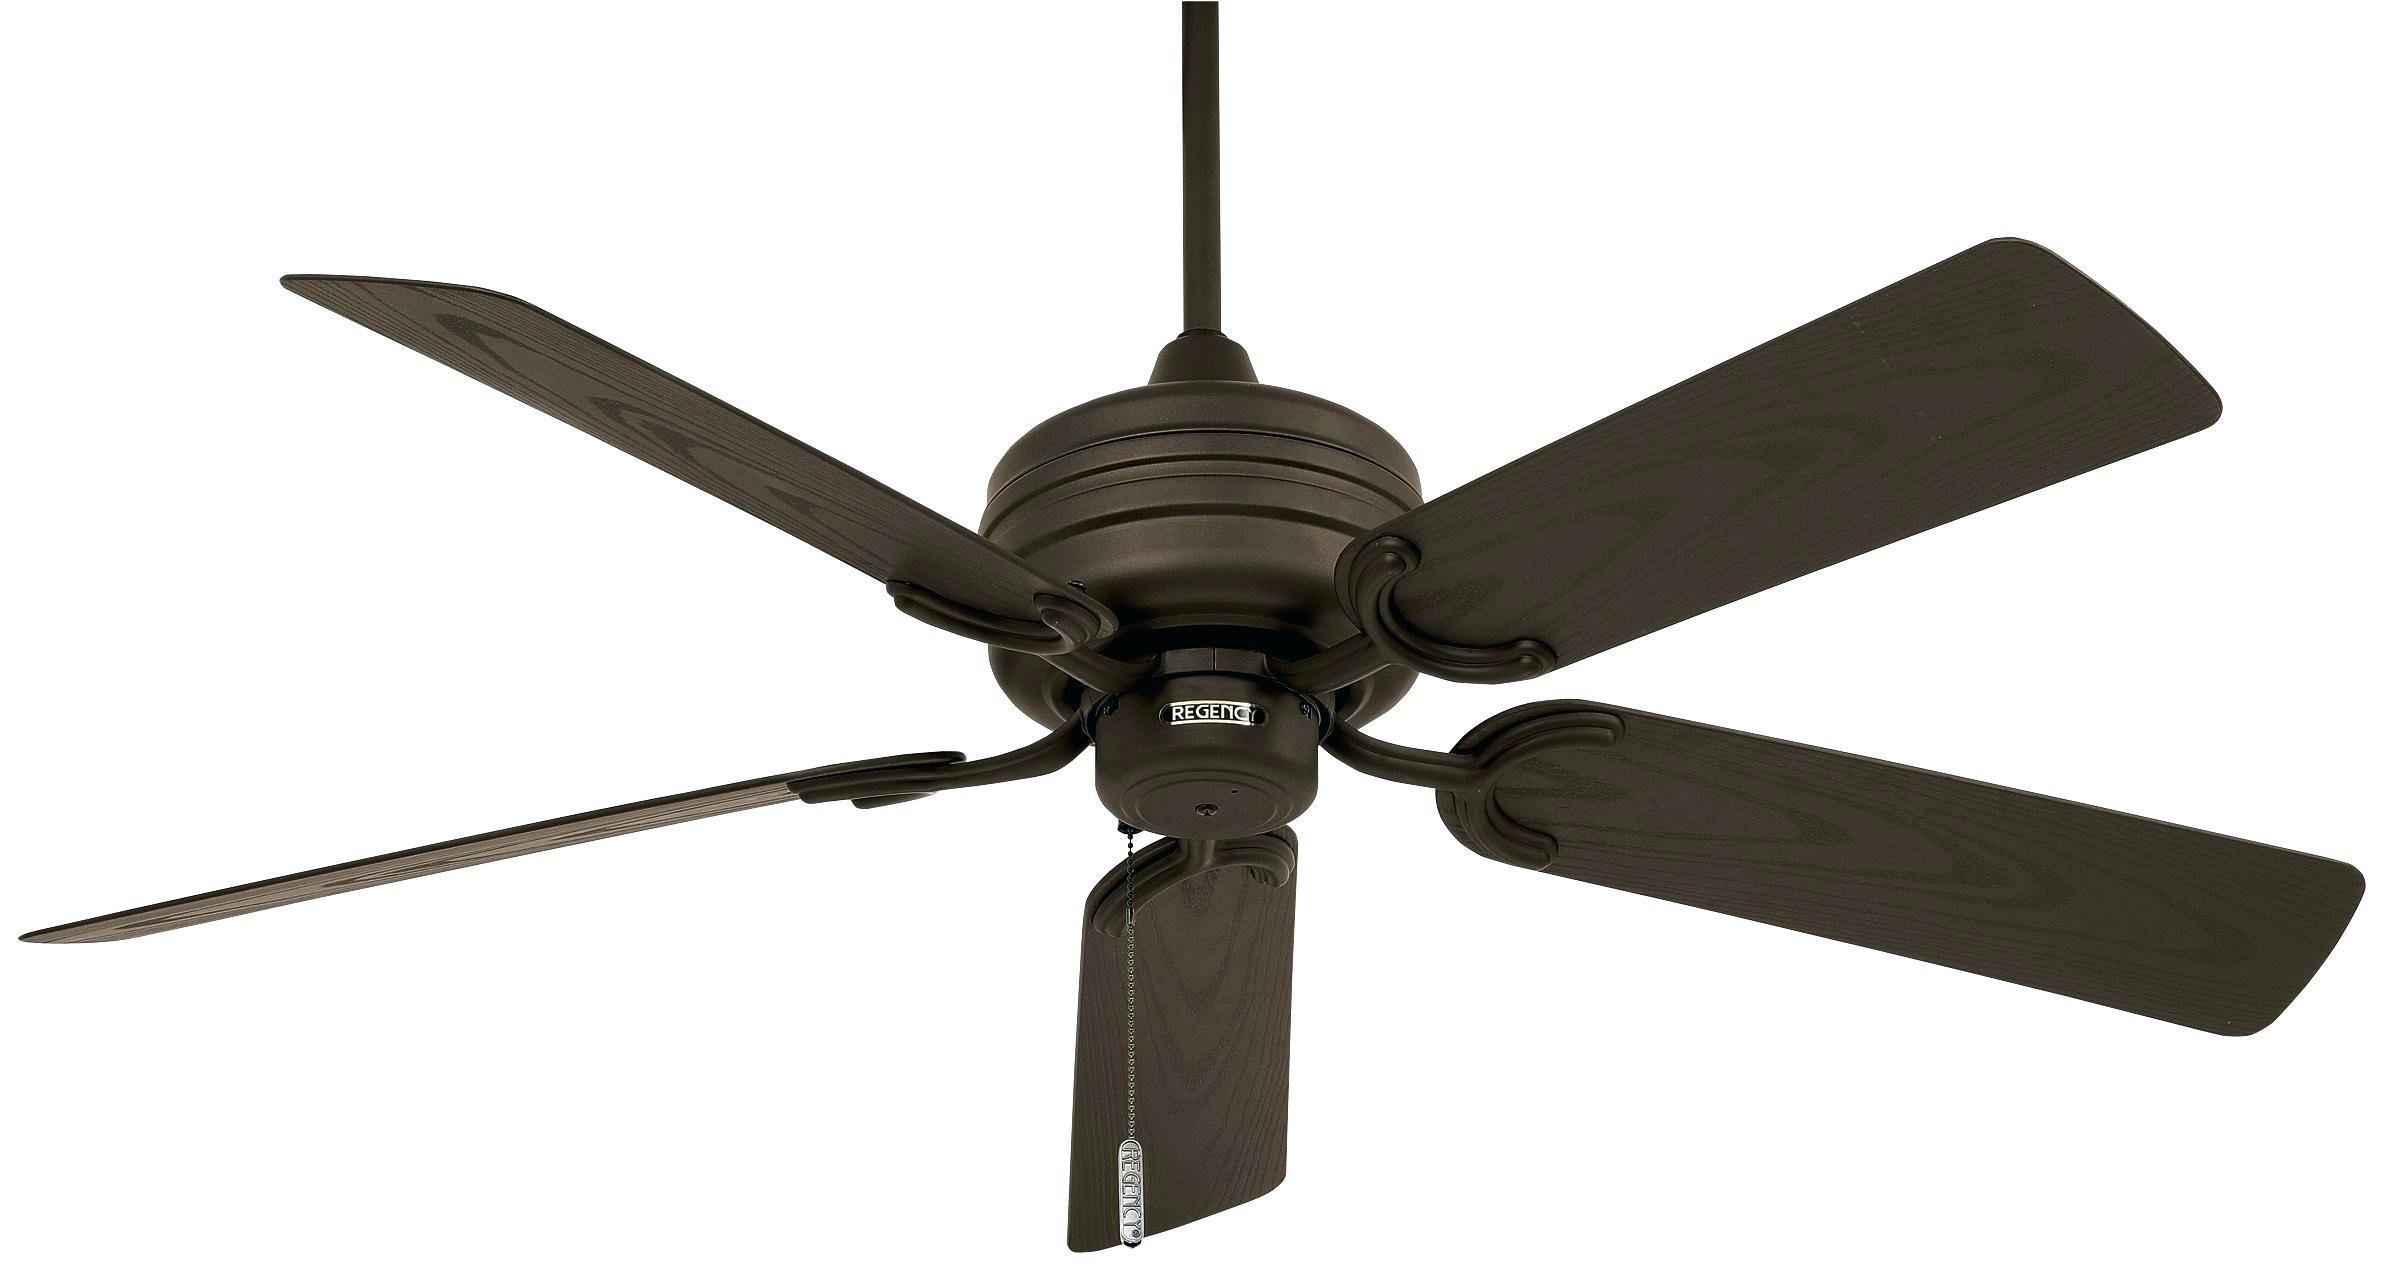 Damp Rated Ceiling Fans With Lights Living Room Fabulous Ornate Inch Regarding Outdoor Ceiling Fans With Damp Rated Lights (#3 of 15)